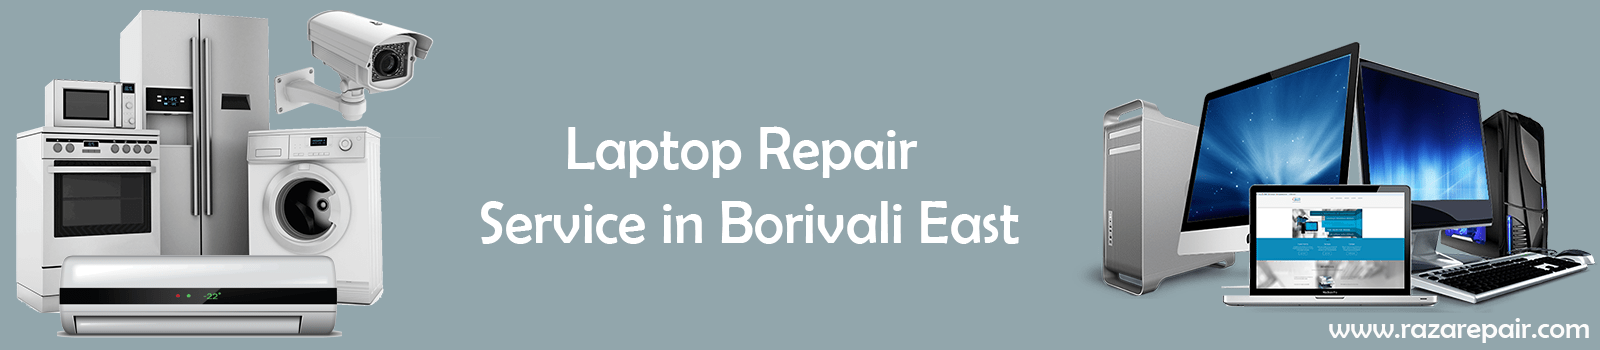 Laptop Repair Service in Borivali East | Call Now 8655112626